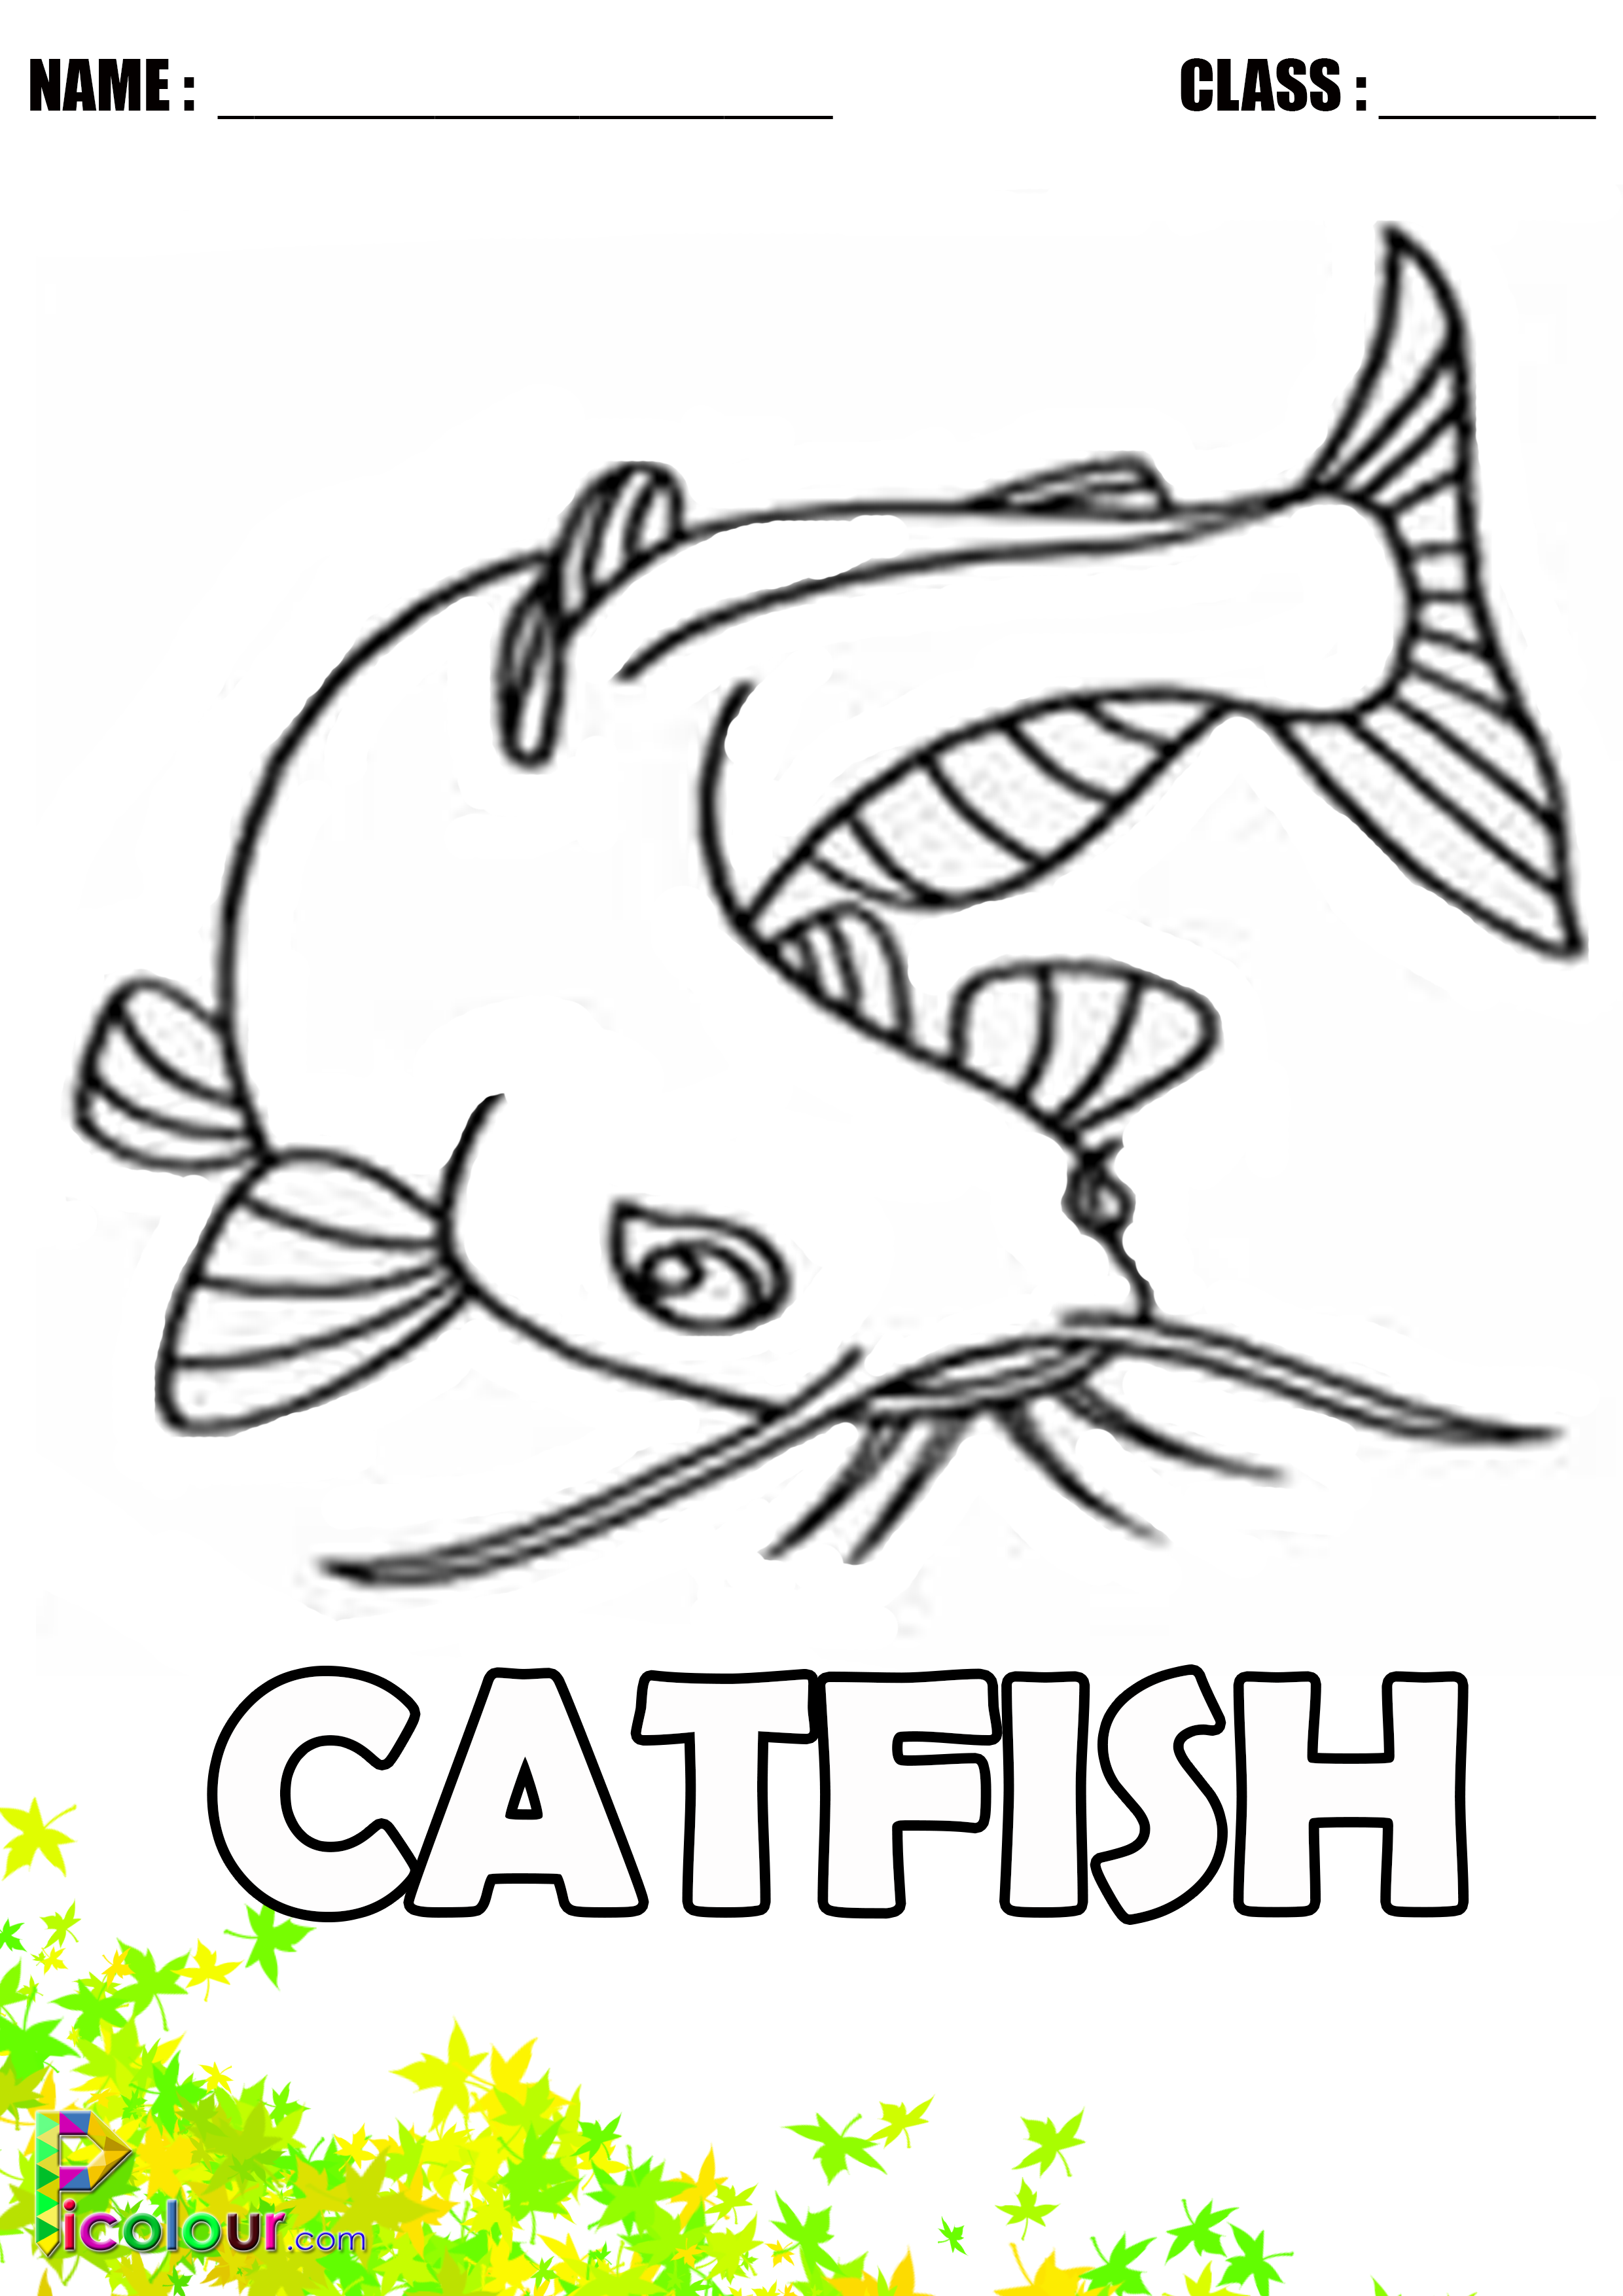 Catfish Colouring Pages For Kids Printable Colouring Pages Printables Kids Coloring Pages For Kids